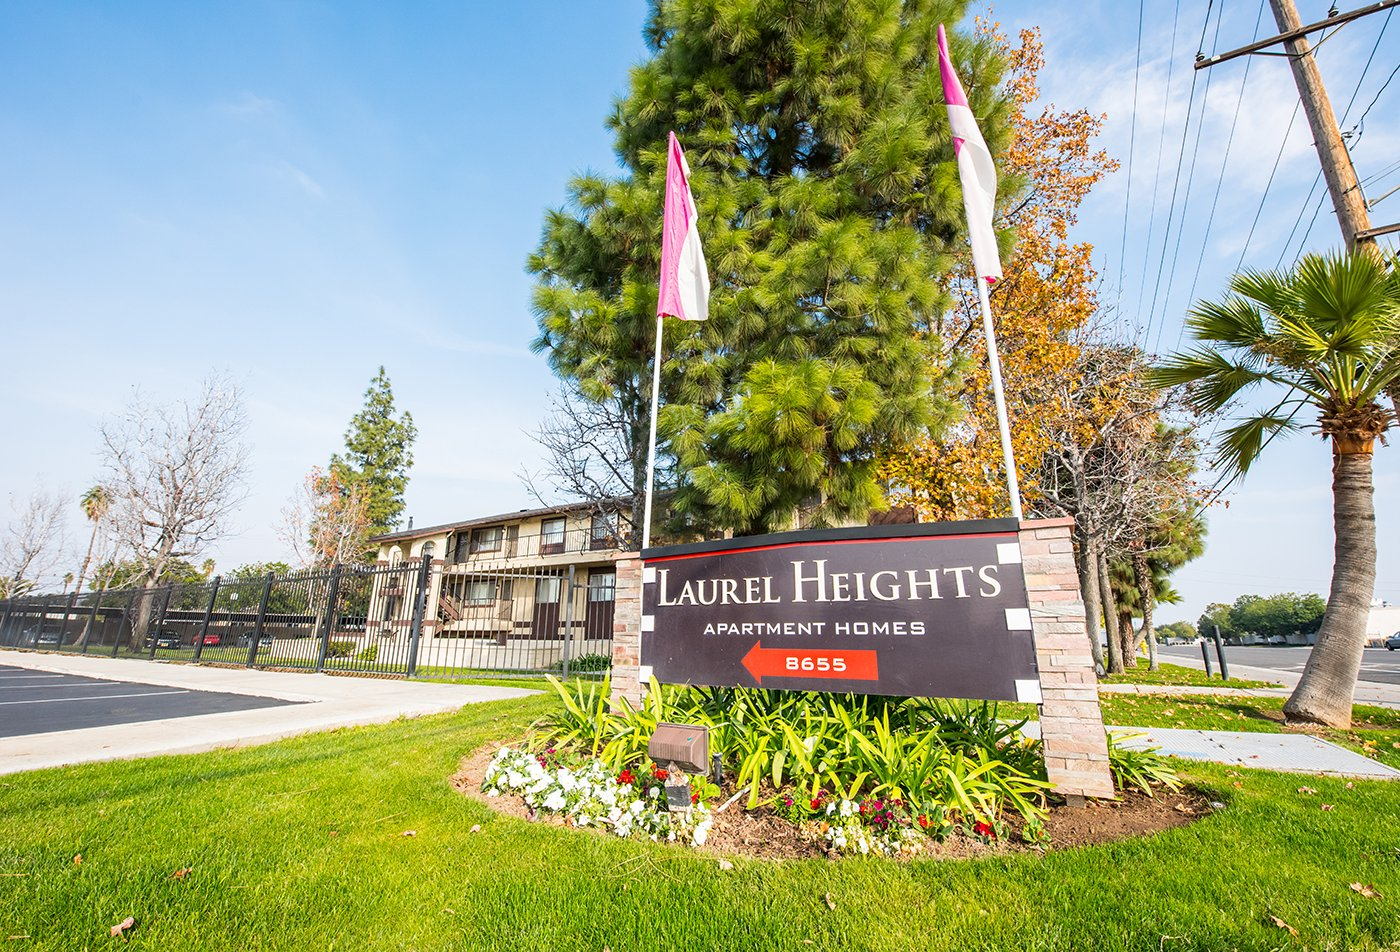 Laurel Heights